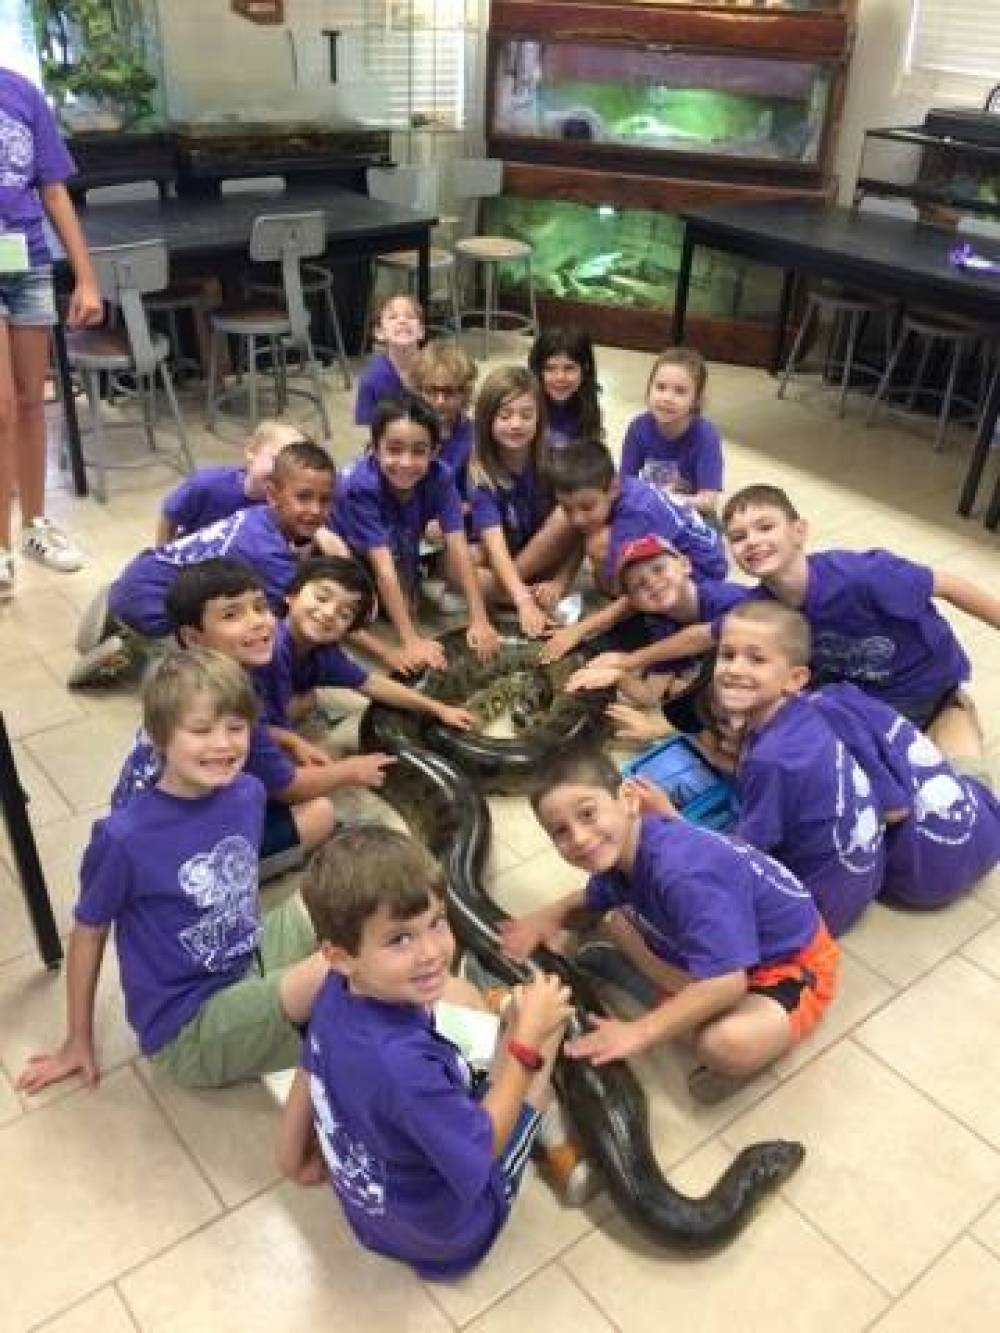 TOP ARIZONA SUMMER CAMP: Reptile Encounters is a Top Summer Camp located in Scottsdale Arizona offering many fun and enriching camp programs. Reptile Encounters also offers CIT/LIT and/or Teen Leadership Opportunities, too.